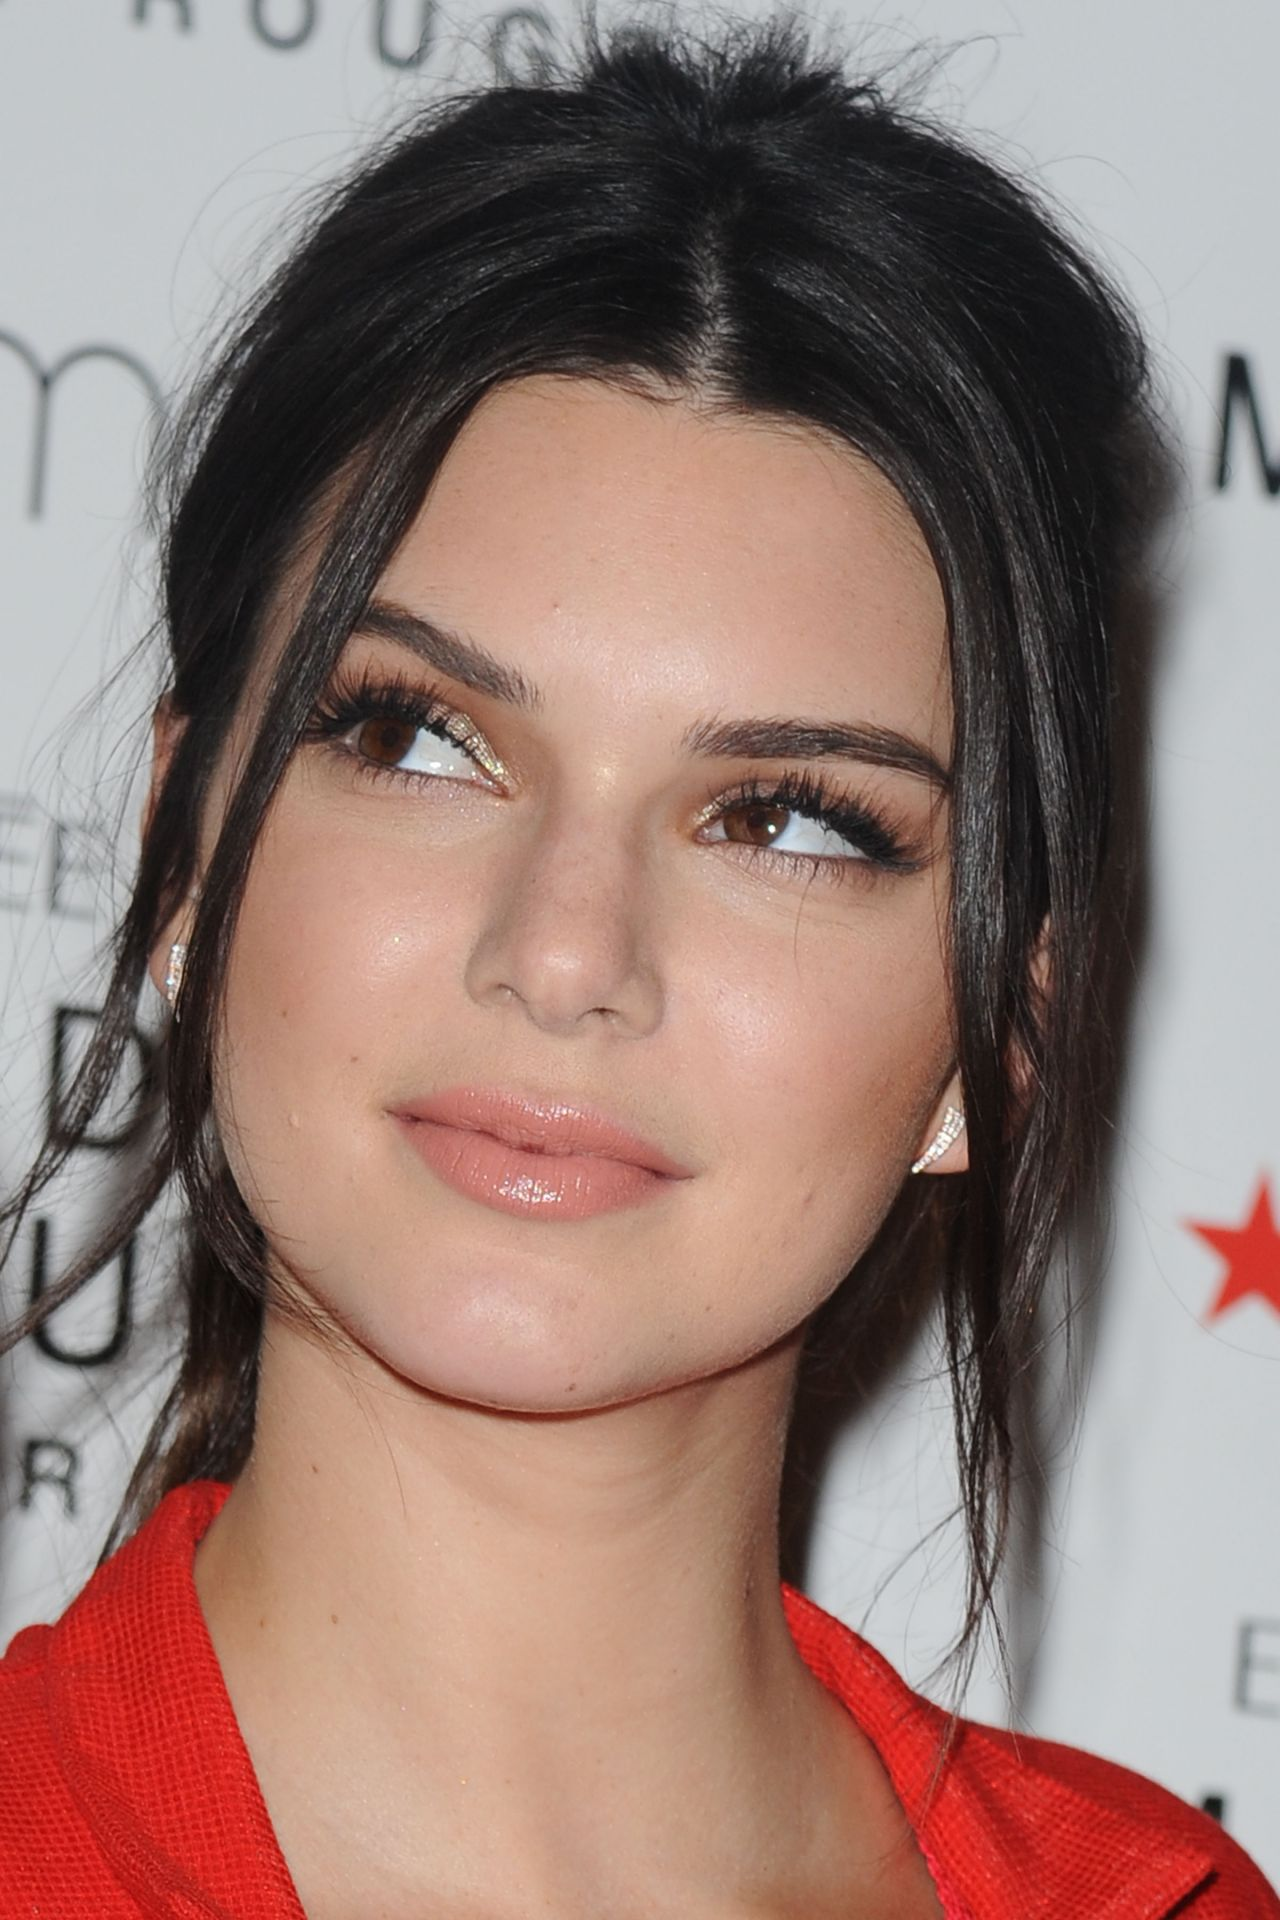 kendall jenner - photo #41